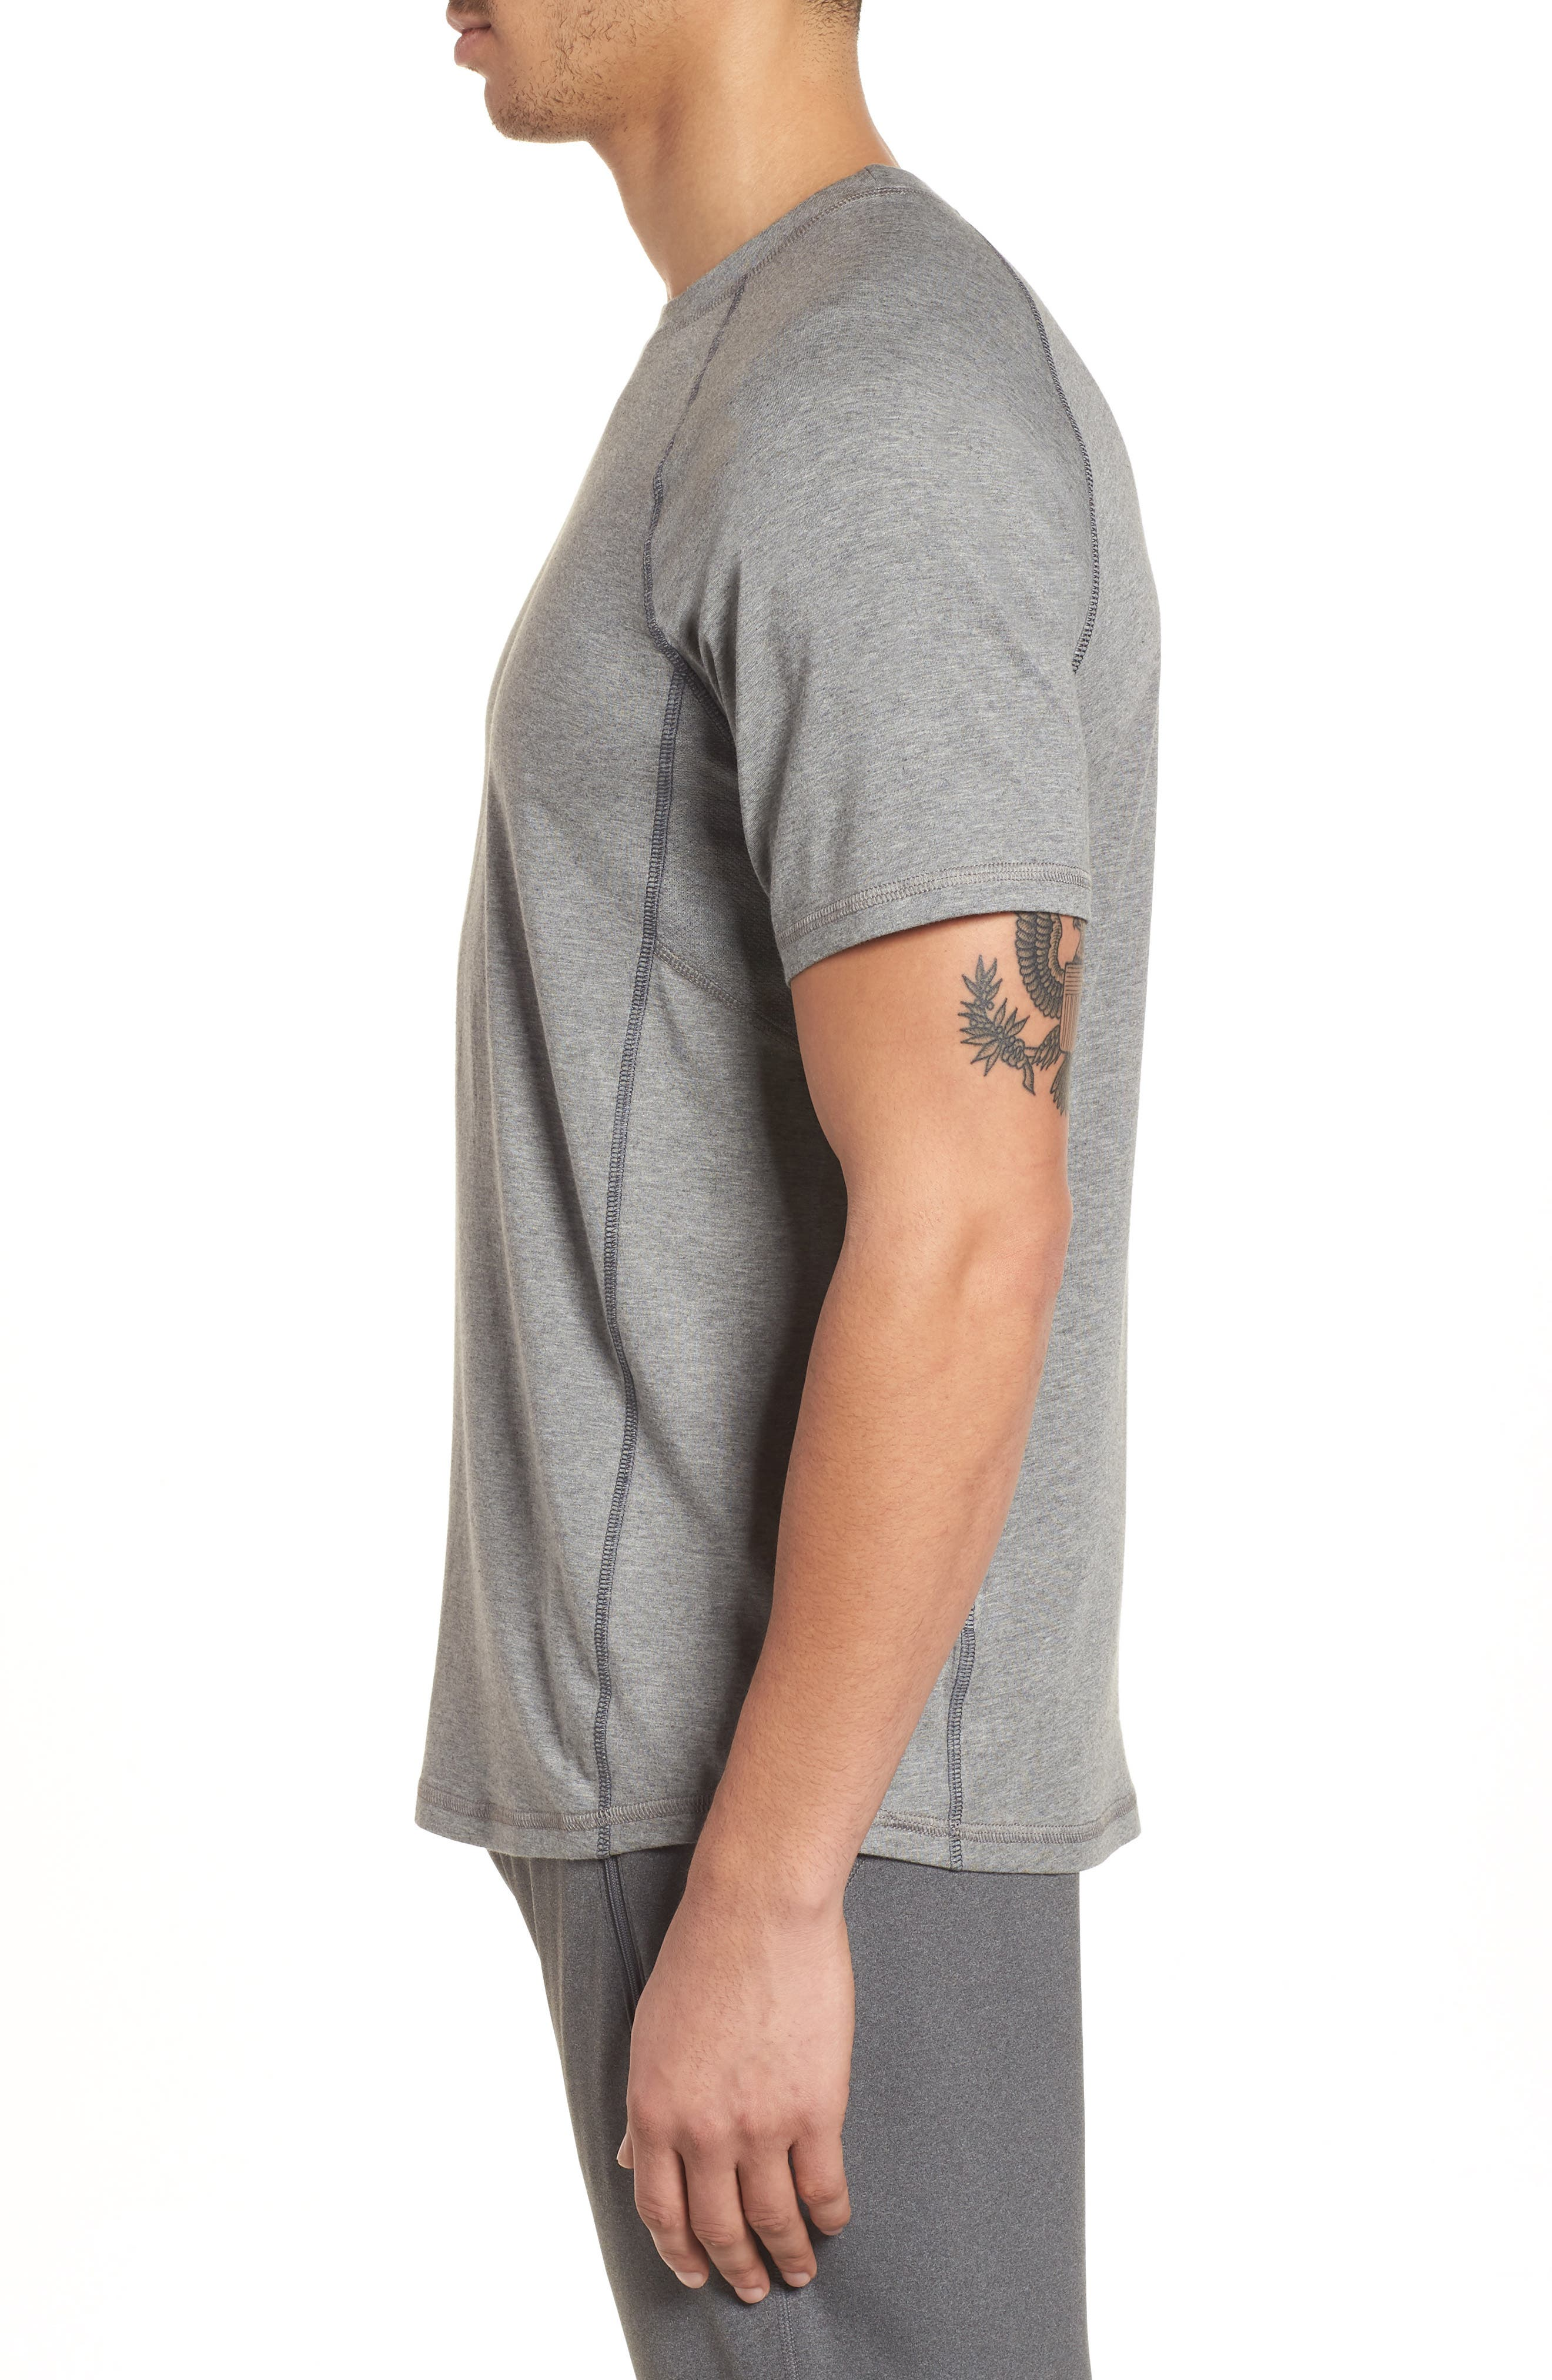 TASC PERFORMANCE, Charge II T-Shirt, Alternate thumbnail 3, color, HEATHER GREY